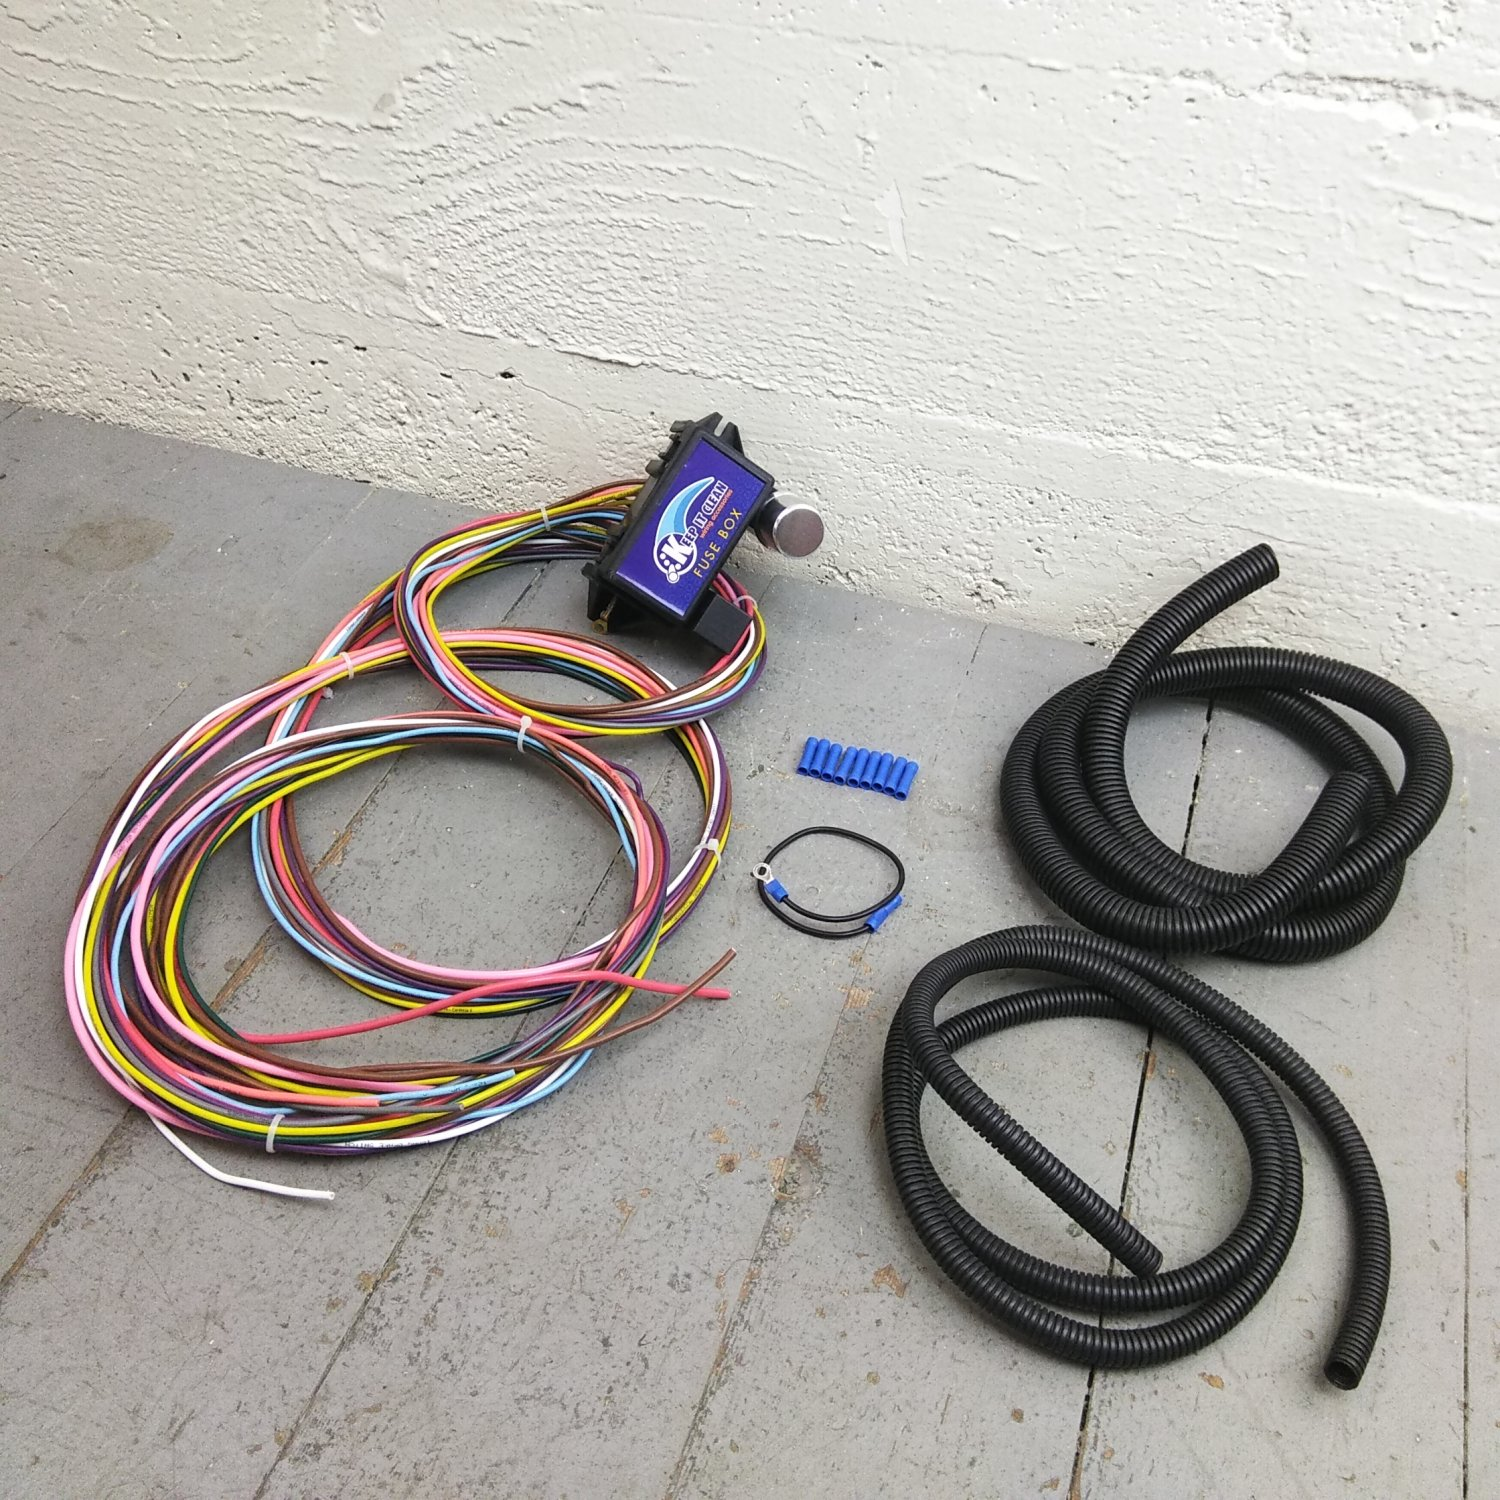 hight resolution of 12v 18 circuit 12 fuse universal wiring harness kit mgb kustom 1946 pontiac bar product description c